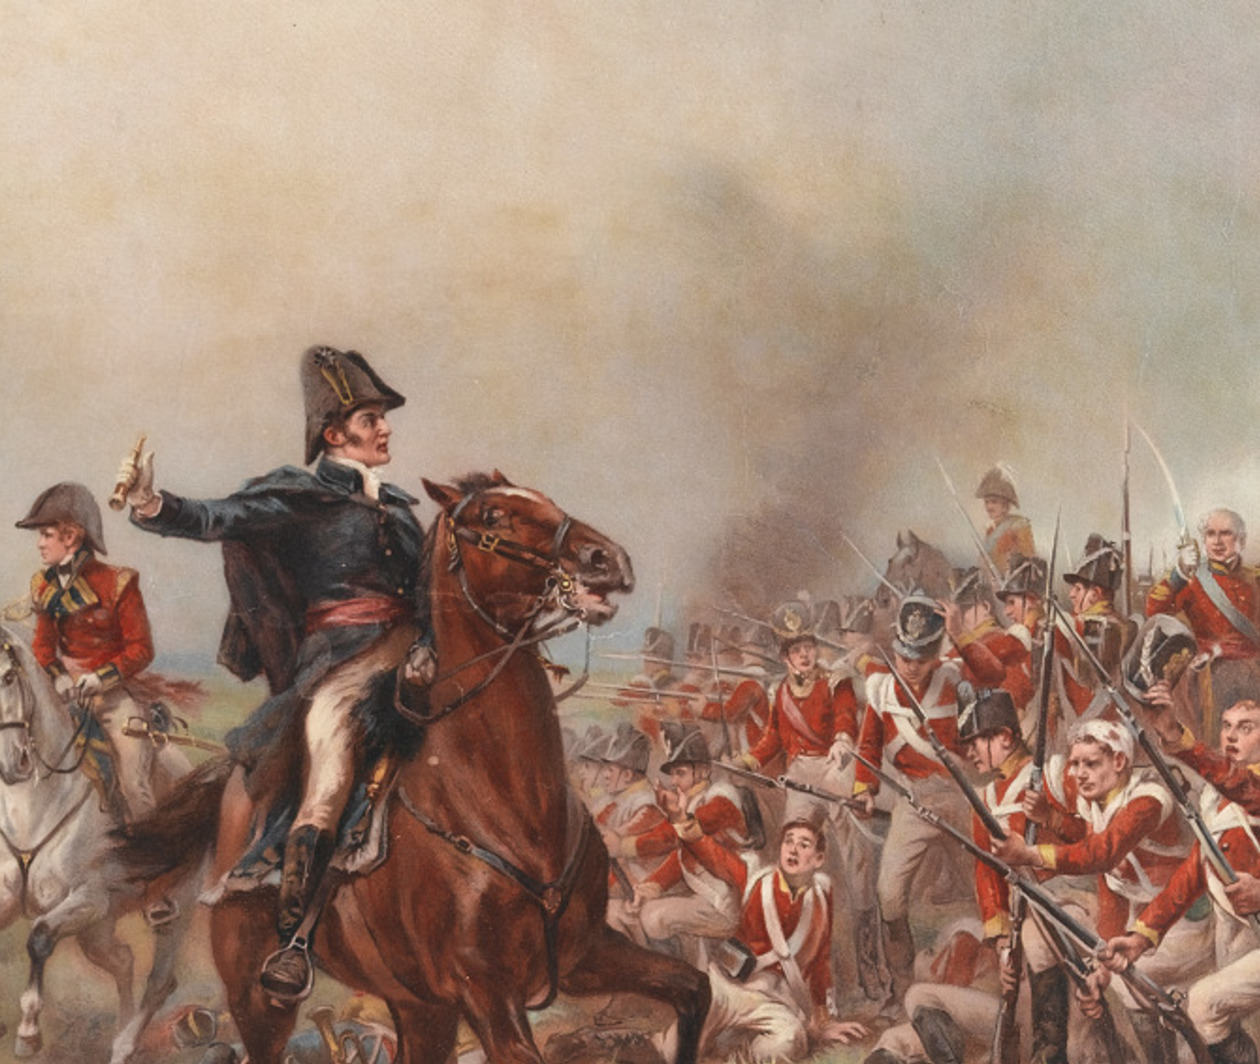 From Waterloo to the Rhine: The British Army 1815-1945